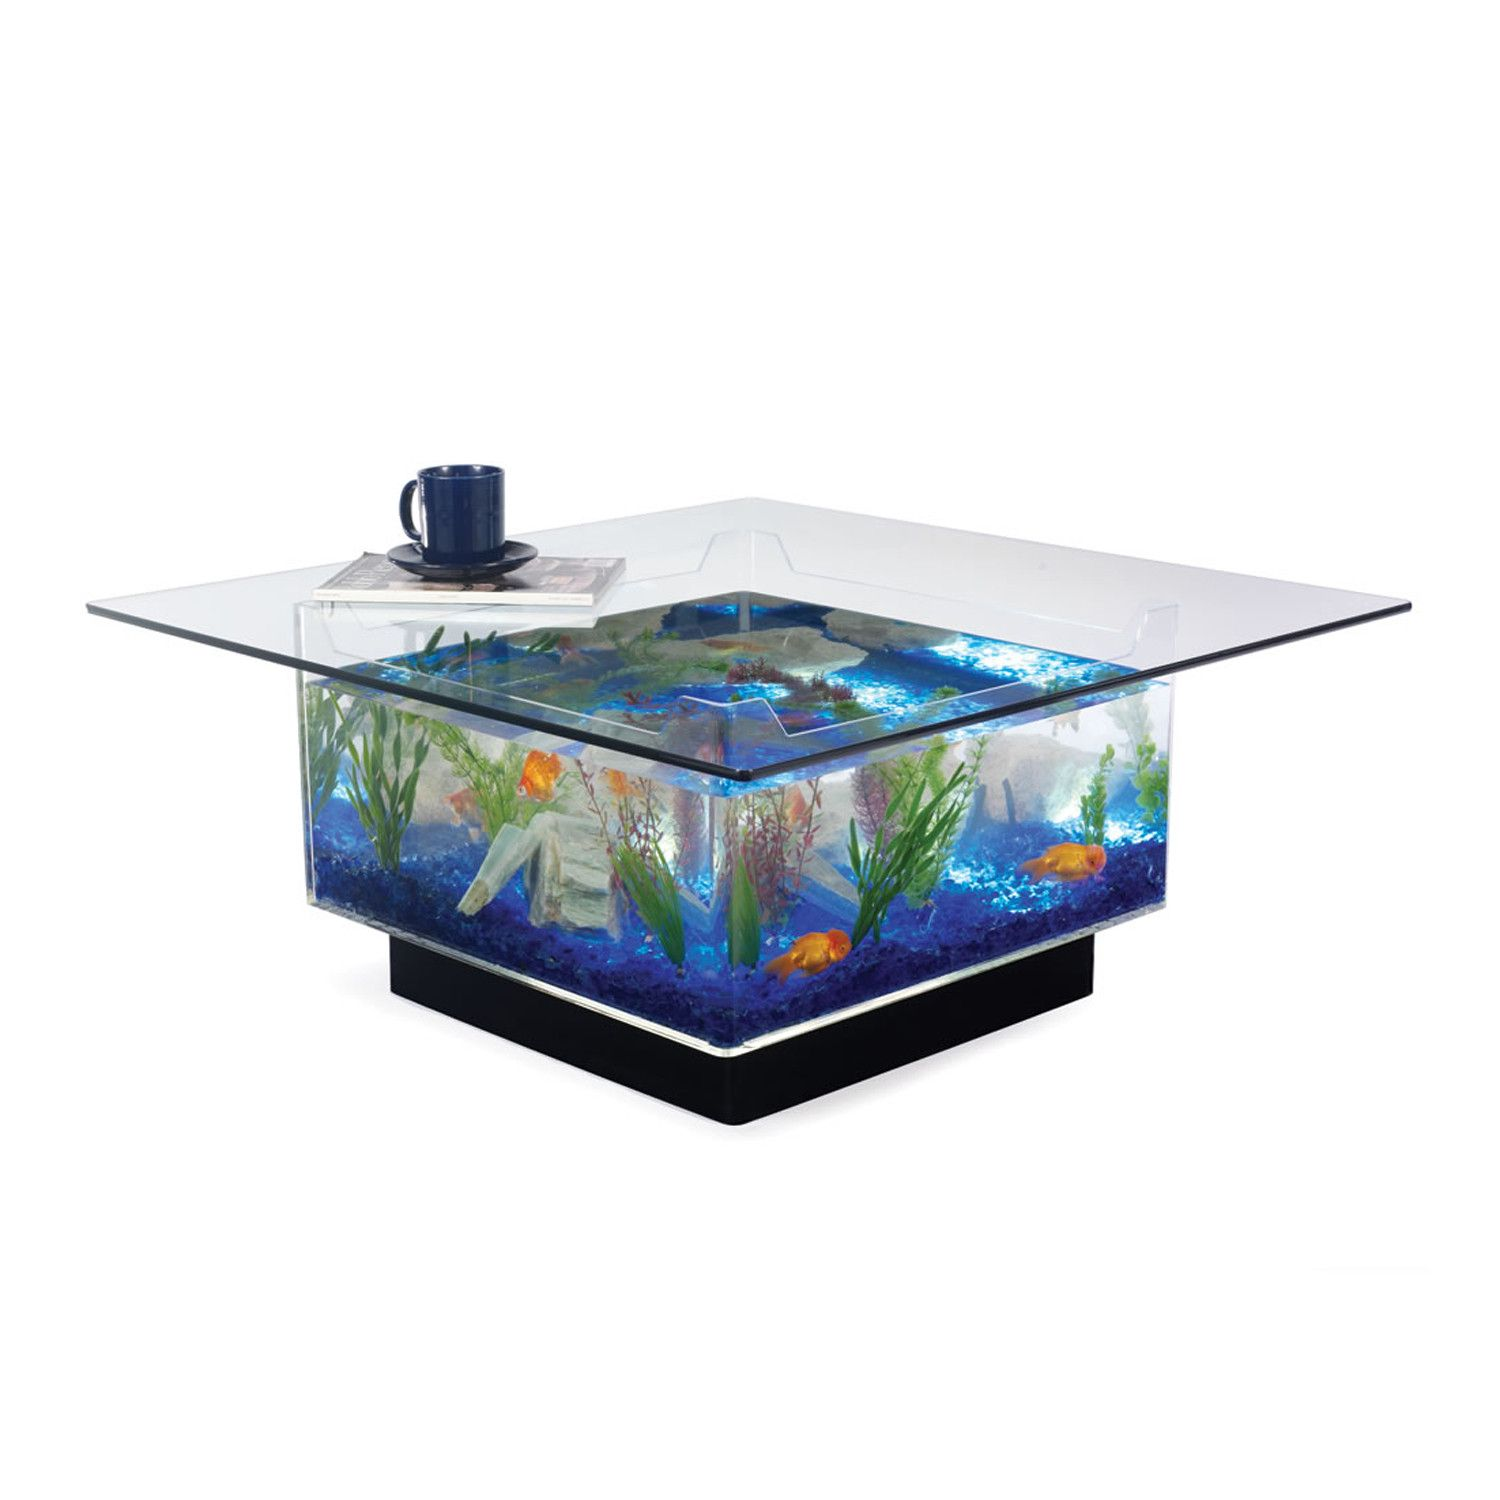 Captivating Coffee Table Fish Tank, Fish Tank Coffee Table This Coffee Table Aquarium  Glass Made In The UK And Comes With A Standard Warranty, Built In